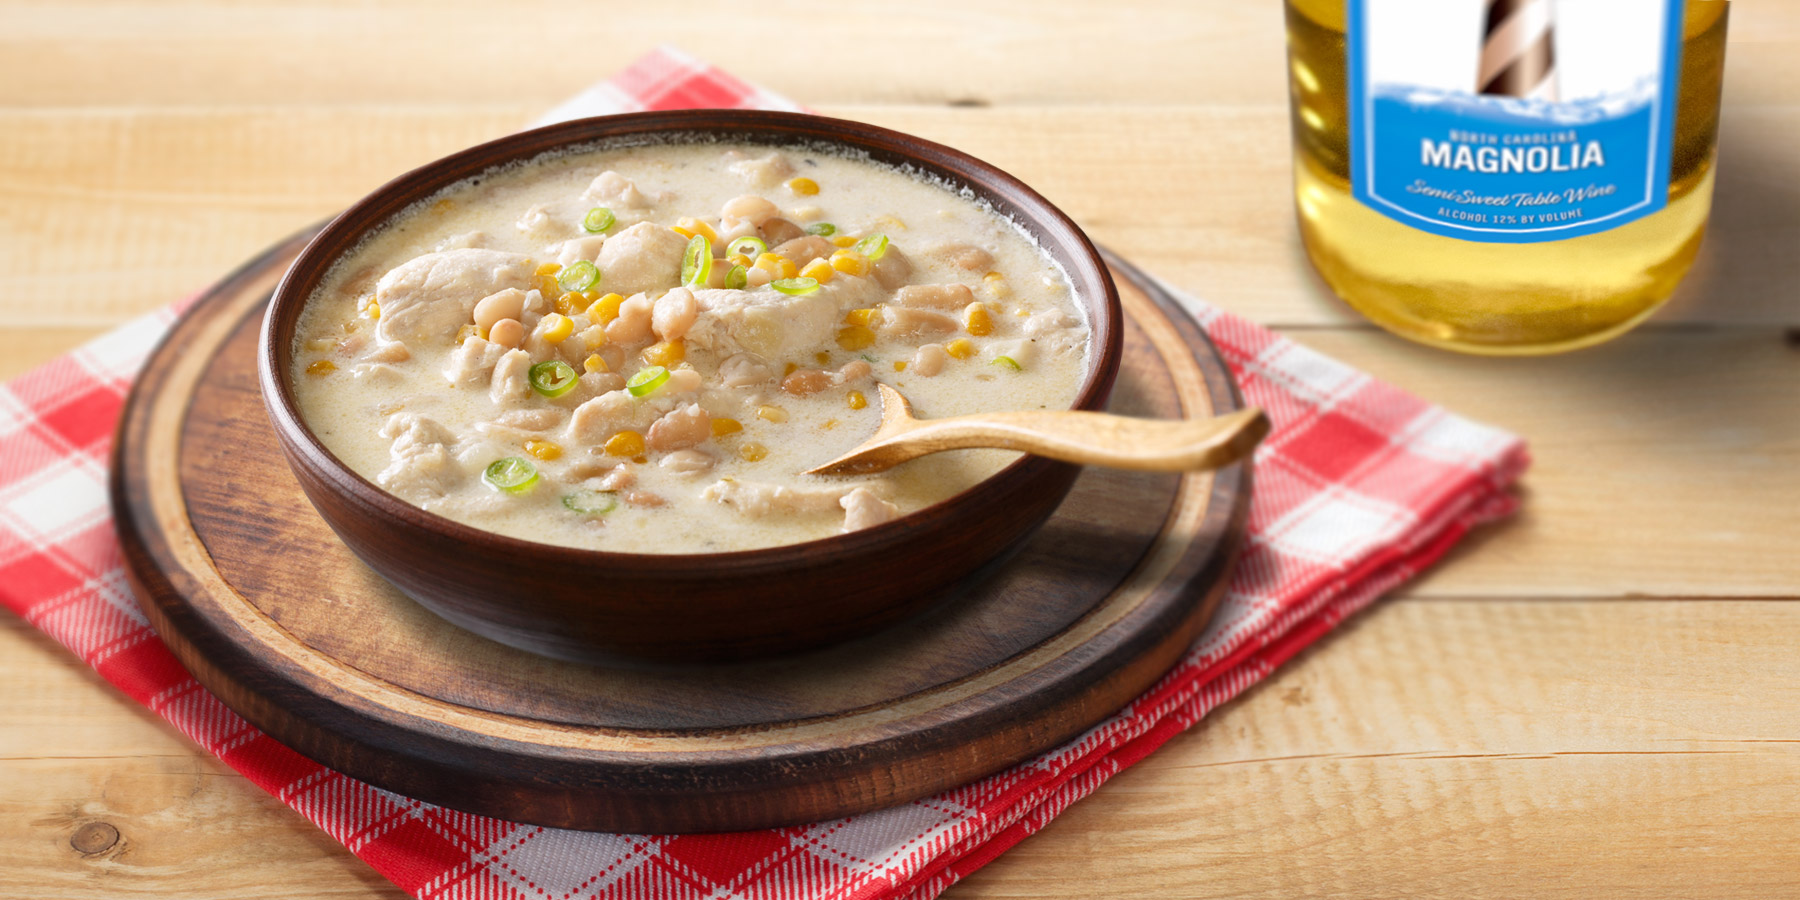 Cream cheese chicken chili recipes are even better with a dash of Duplin Magnolia wine.